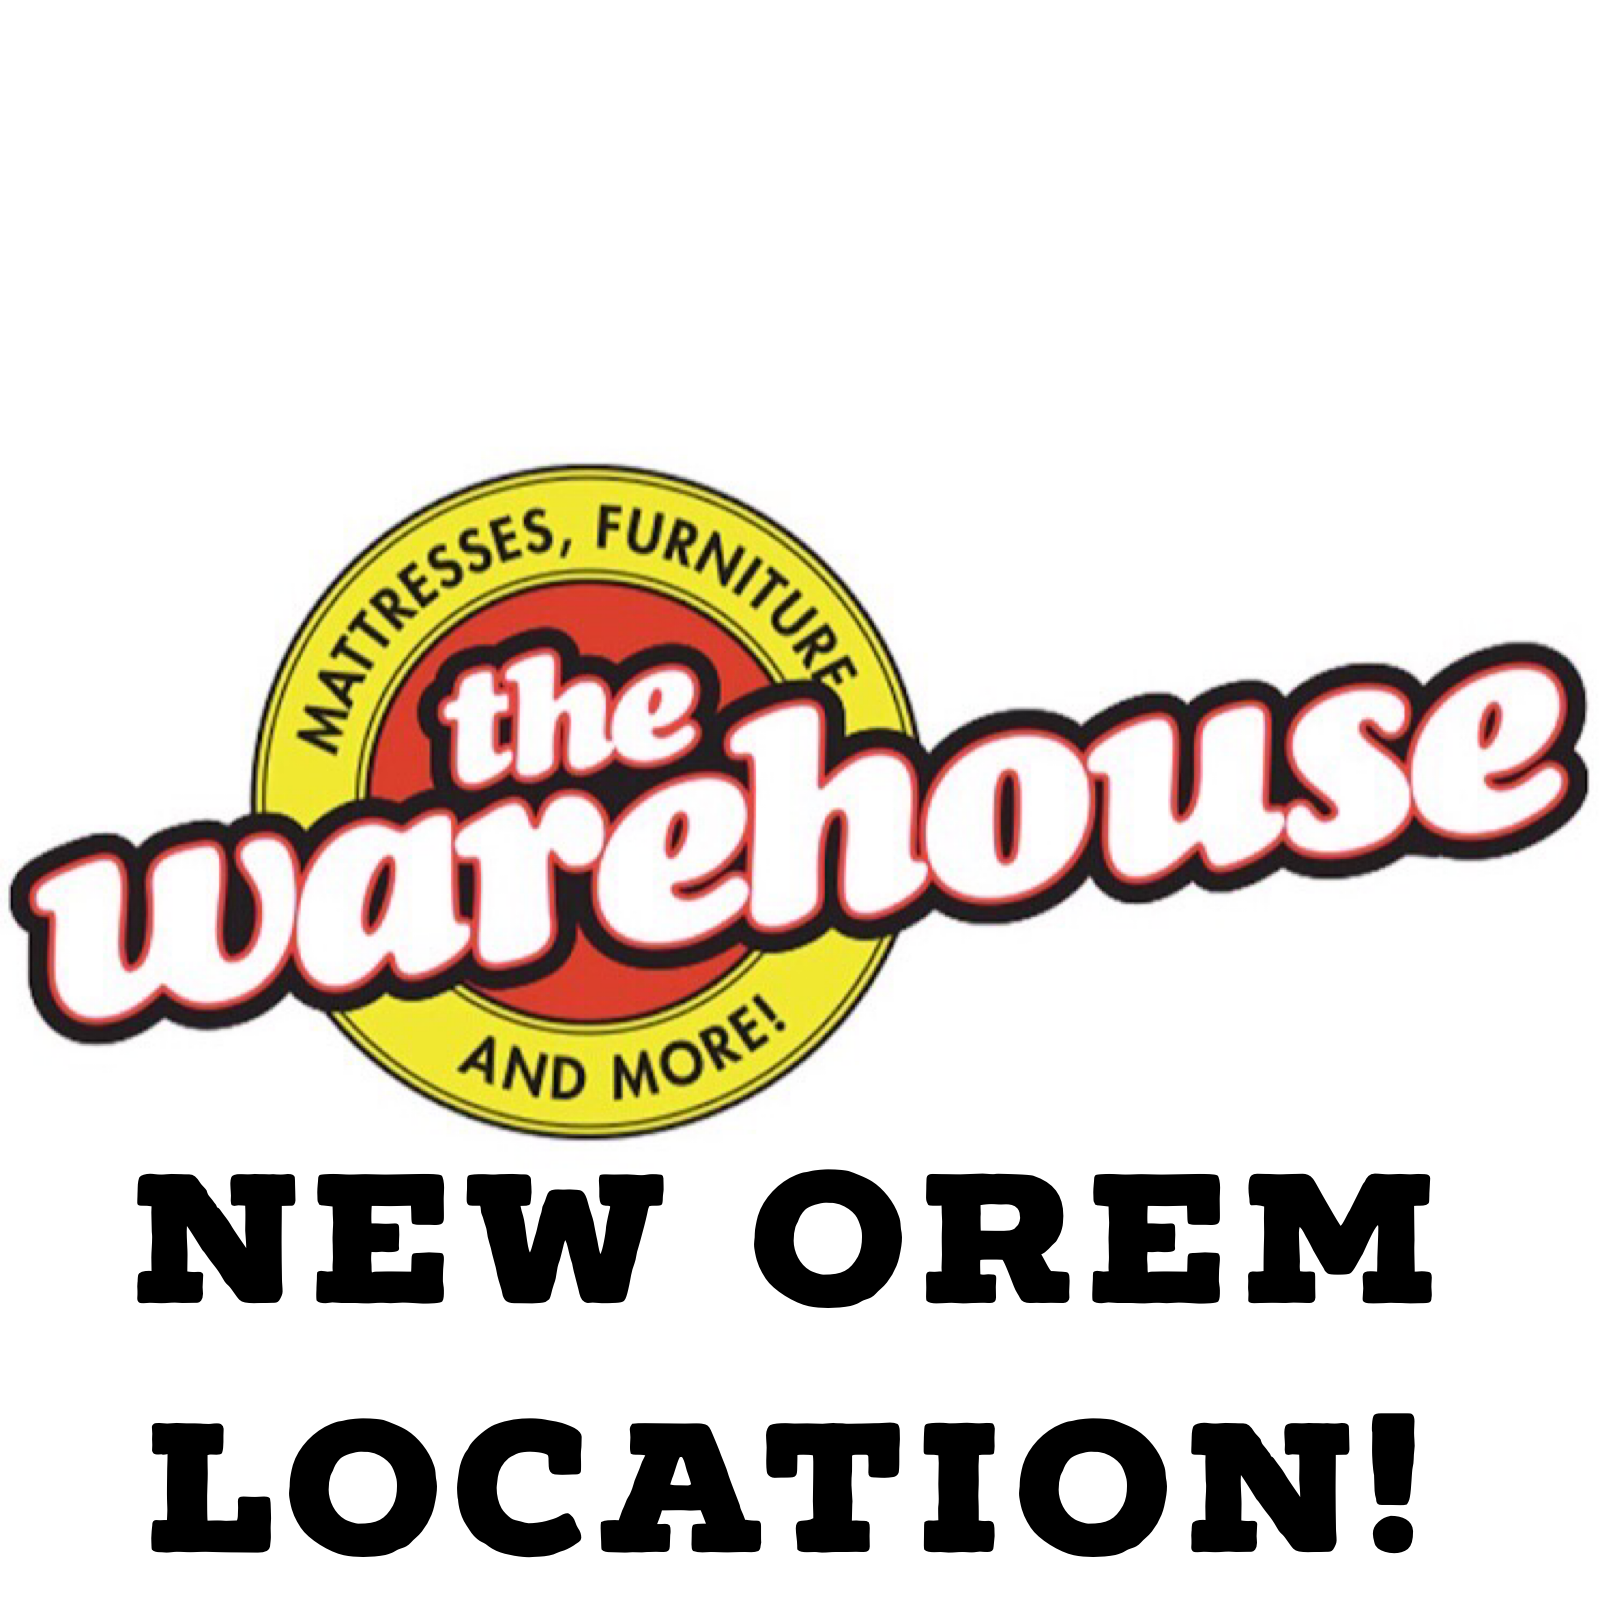 New Location in Orem!